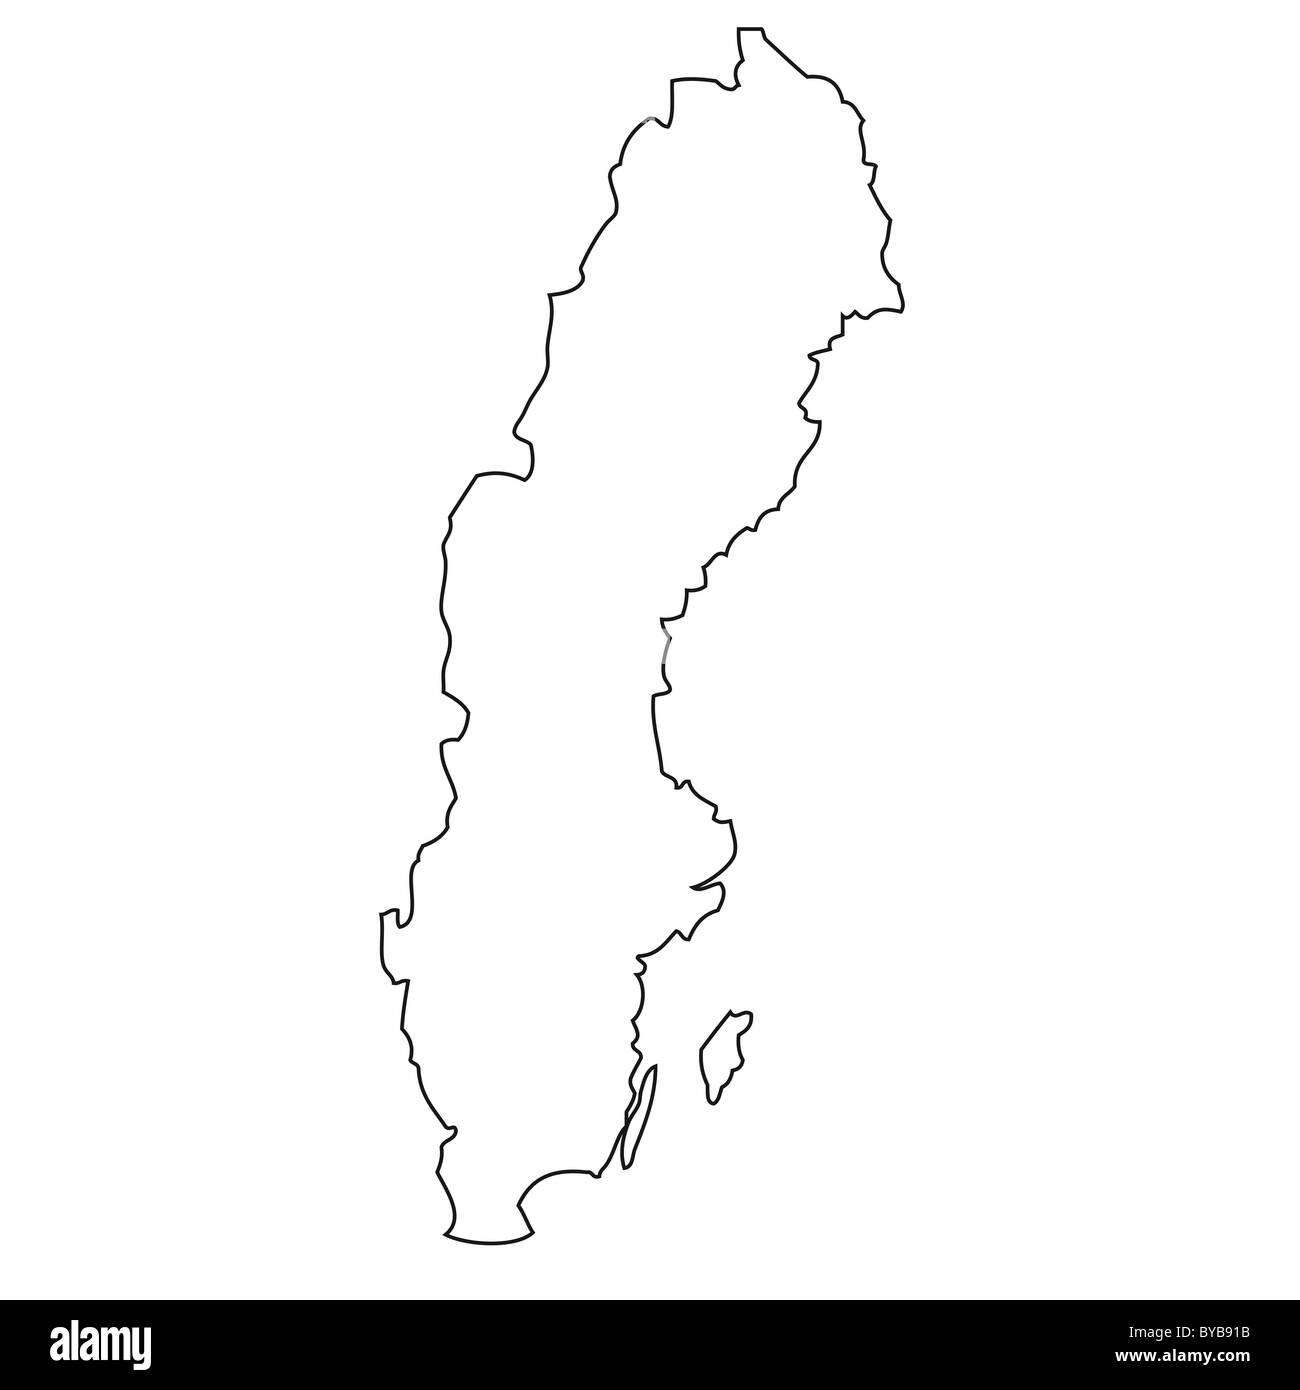 Outline, map of Sweden - Stock Image